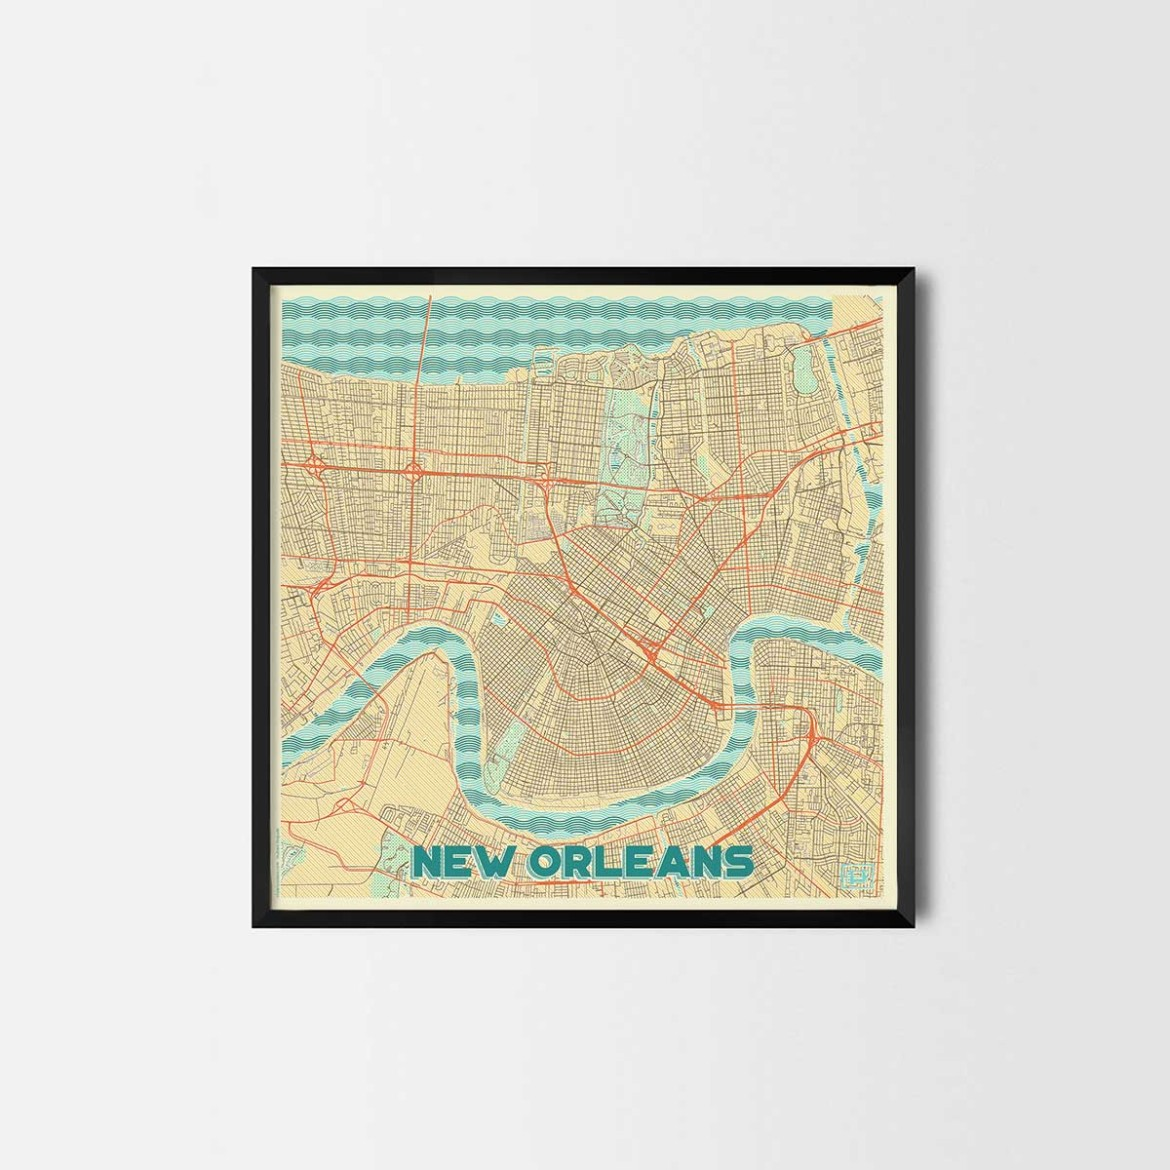 New Orleans gift - Map Art Prints and Posters, Home Decor Gifts